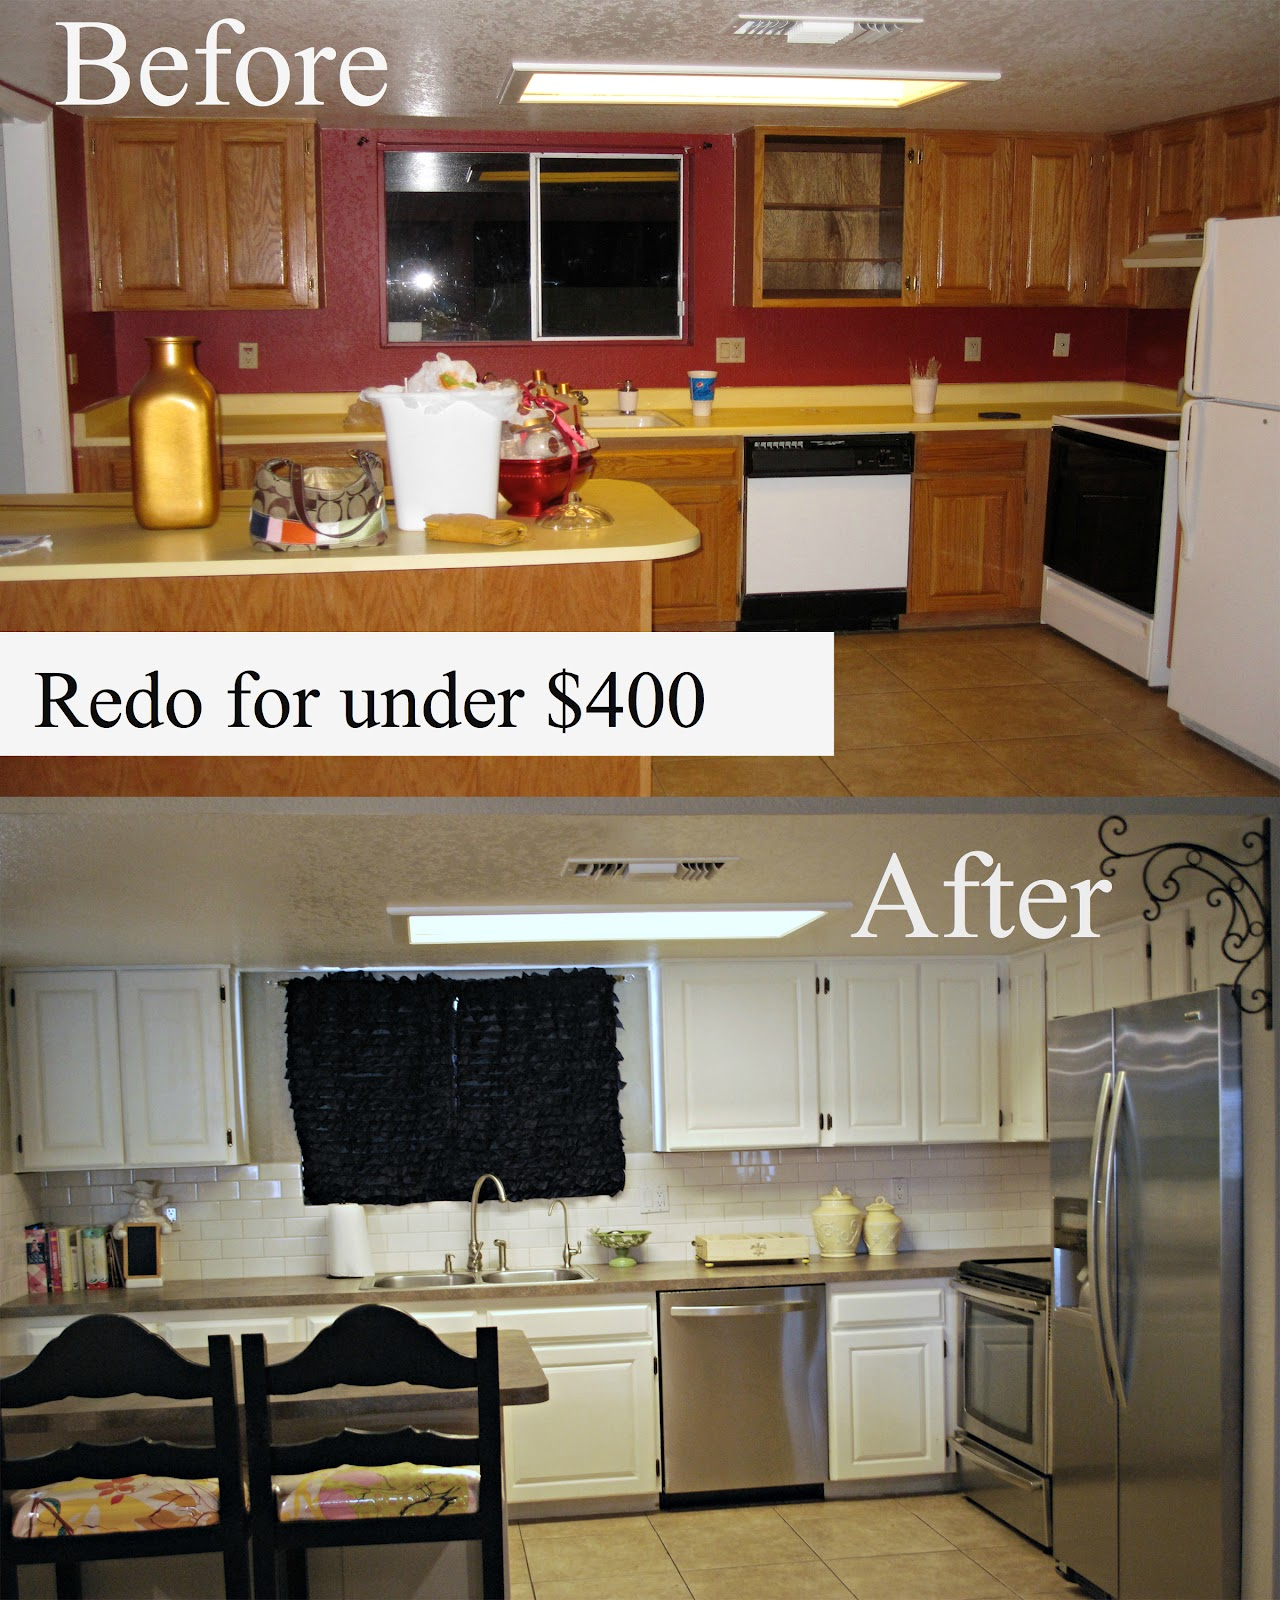 Affordable Kitchen Cabinet Updates: My Kitchen Redo Under $400!